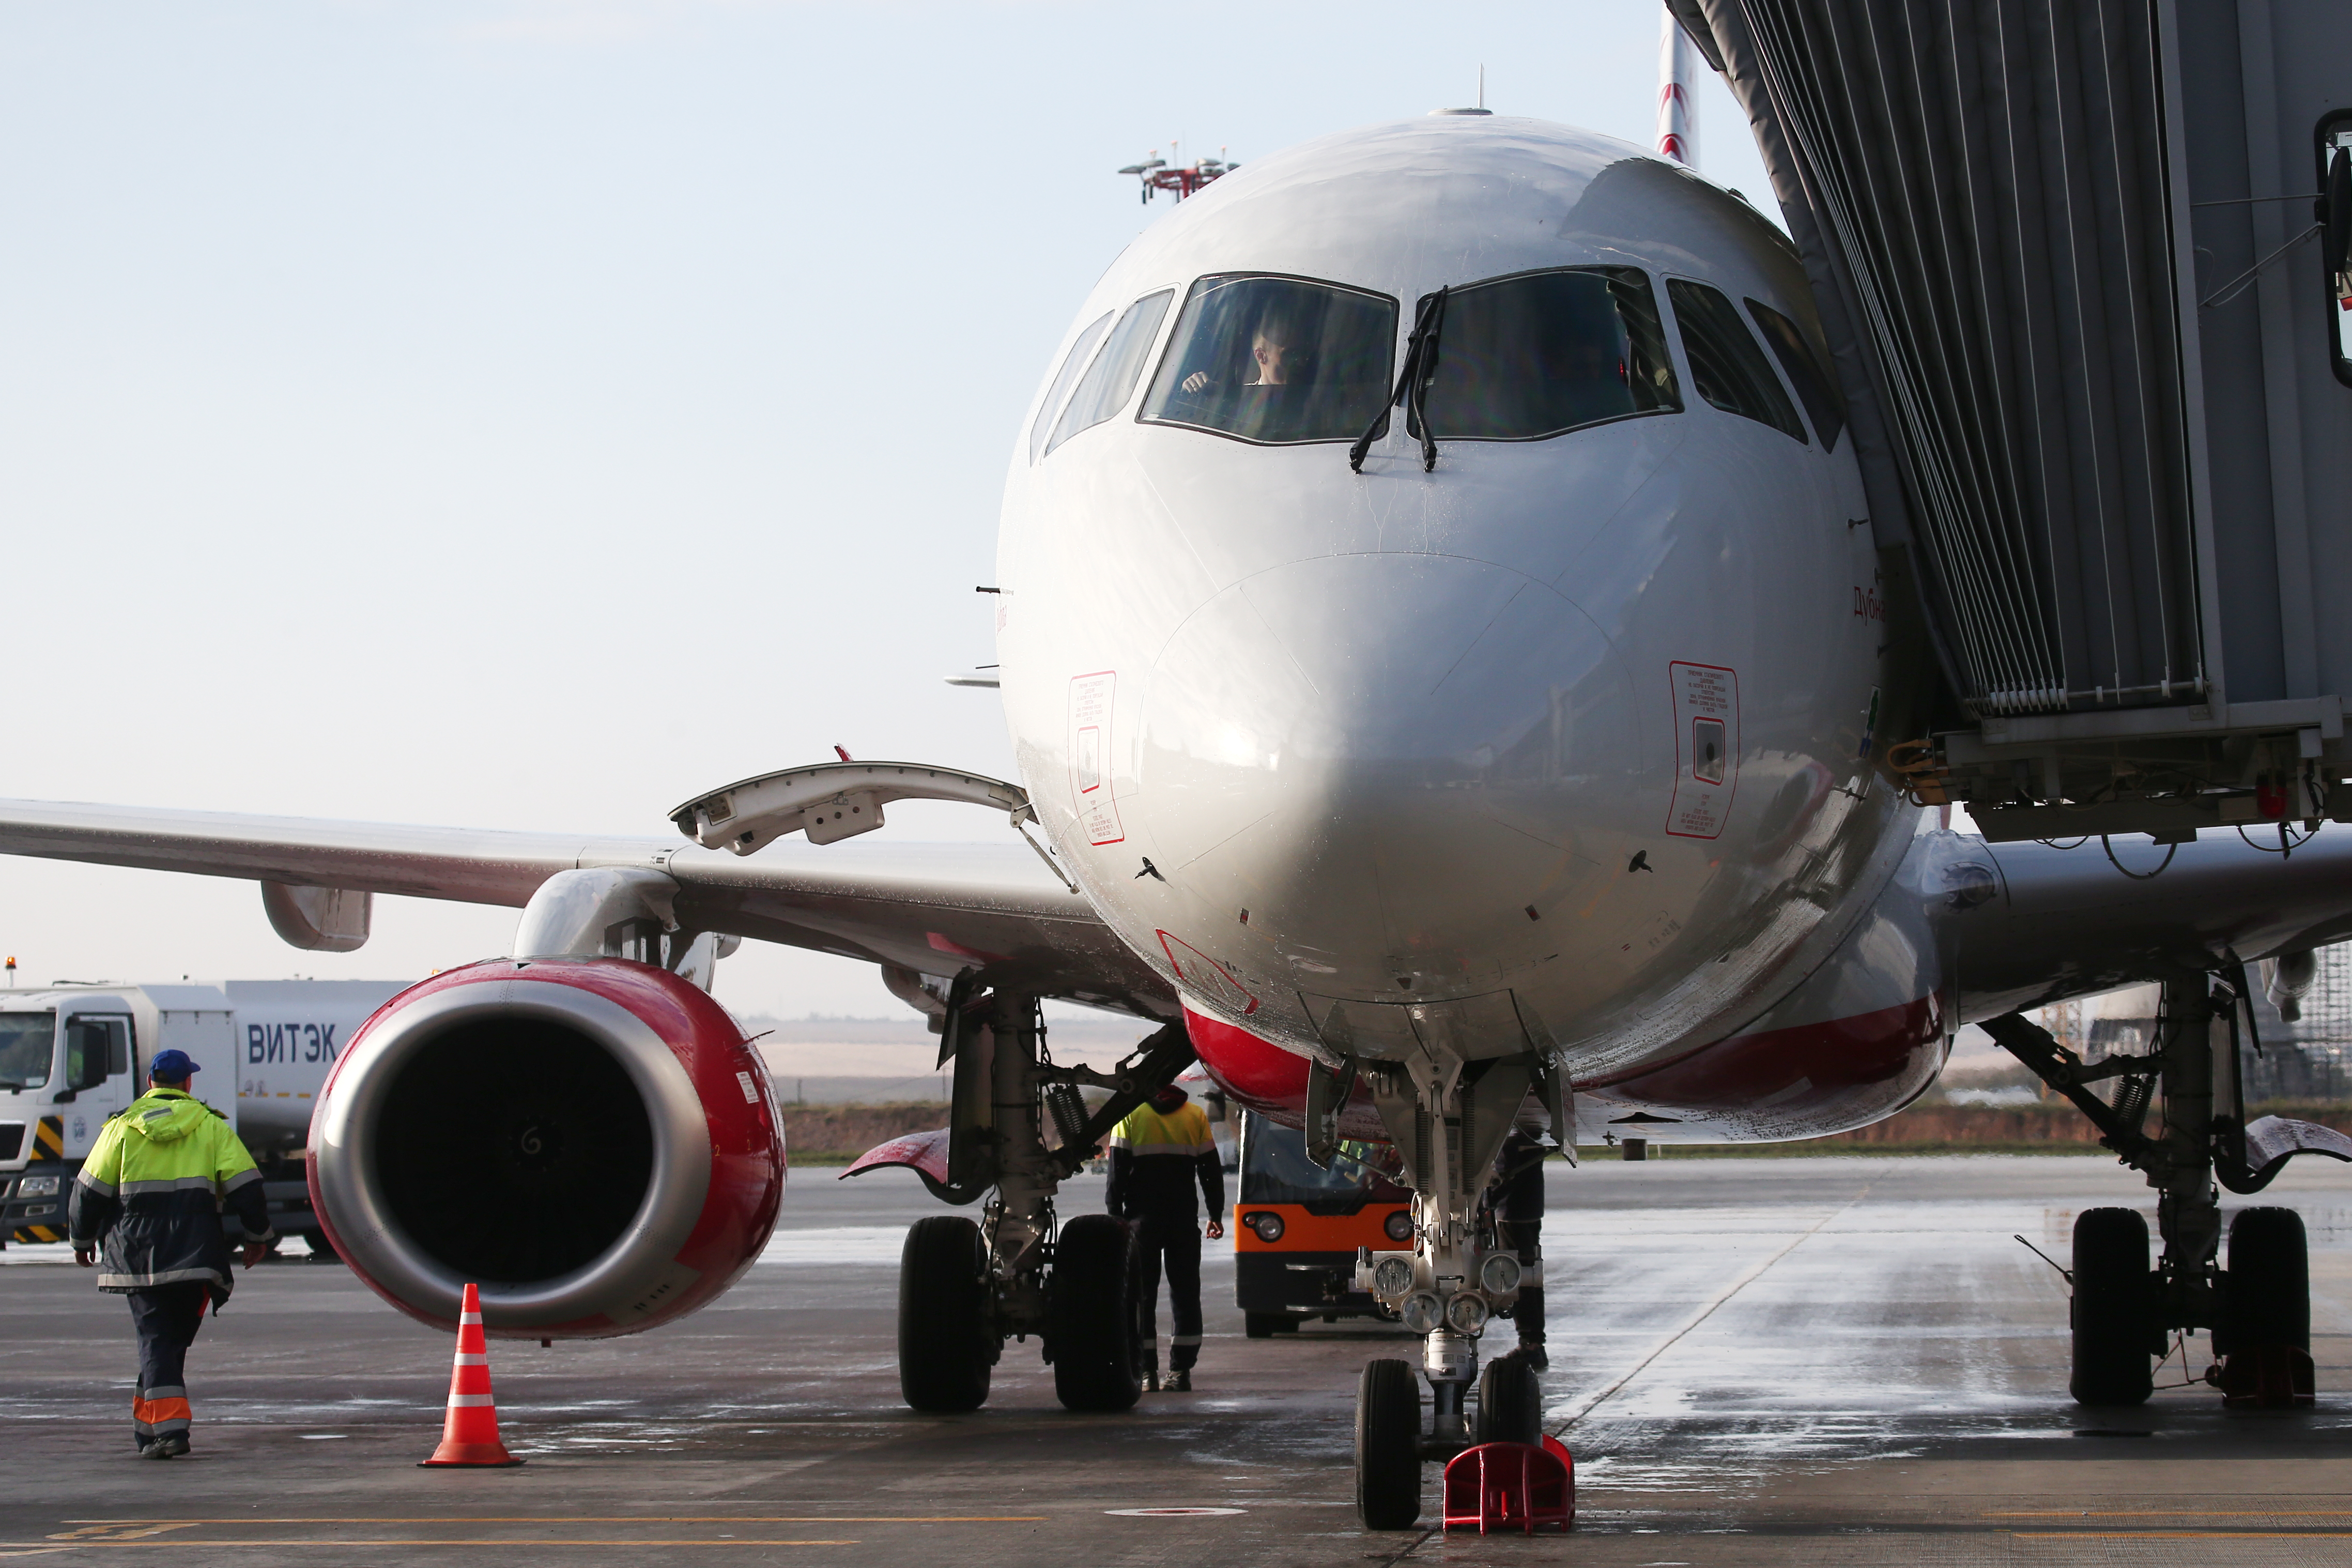 6,000,000th passenger of Rossiya Airlines welcomed at Simferopol Airport in Crimea